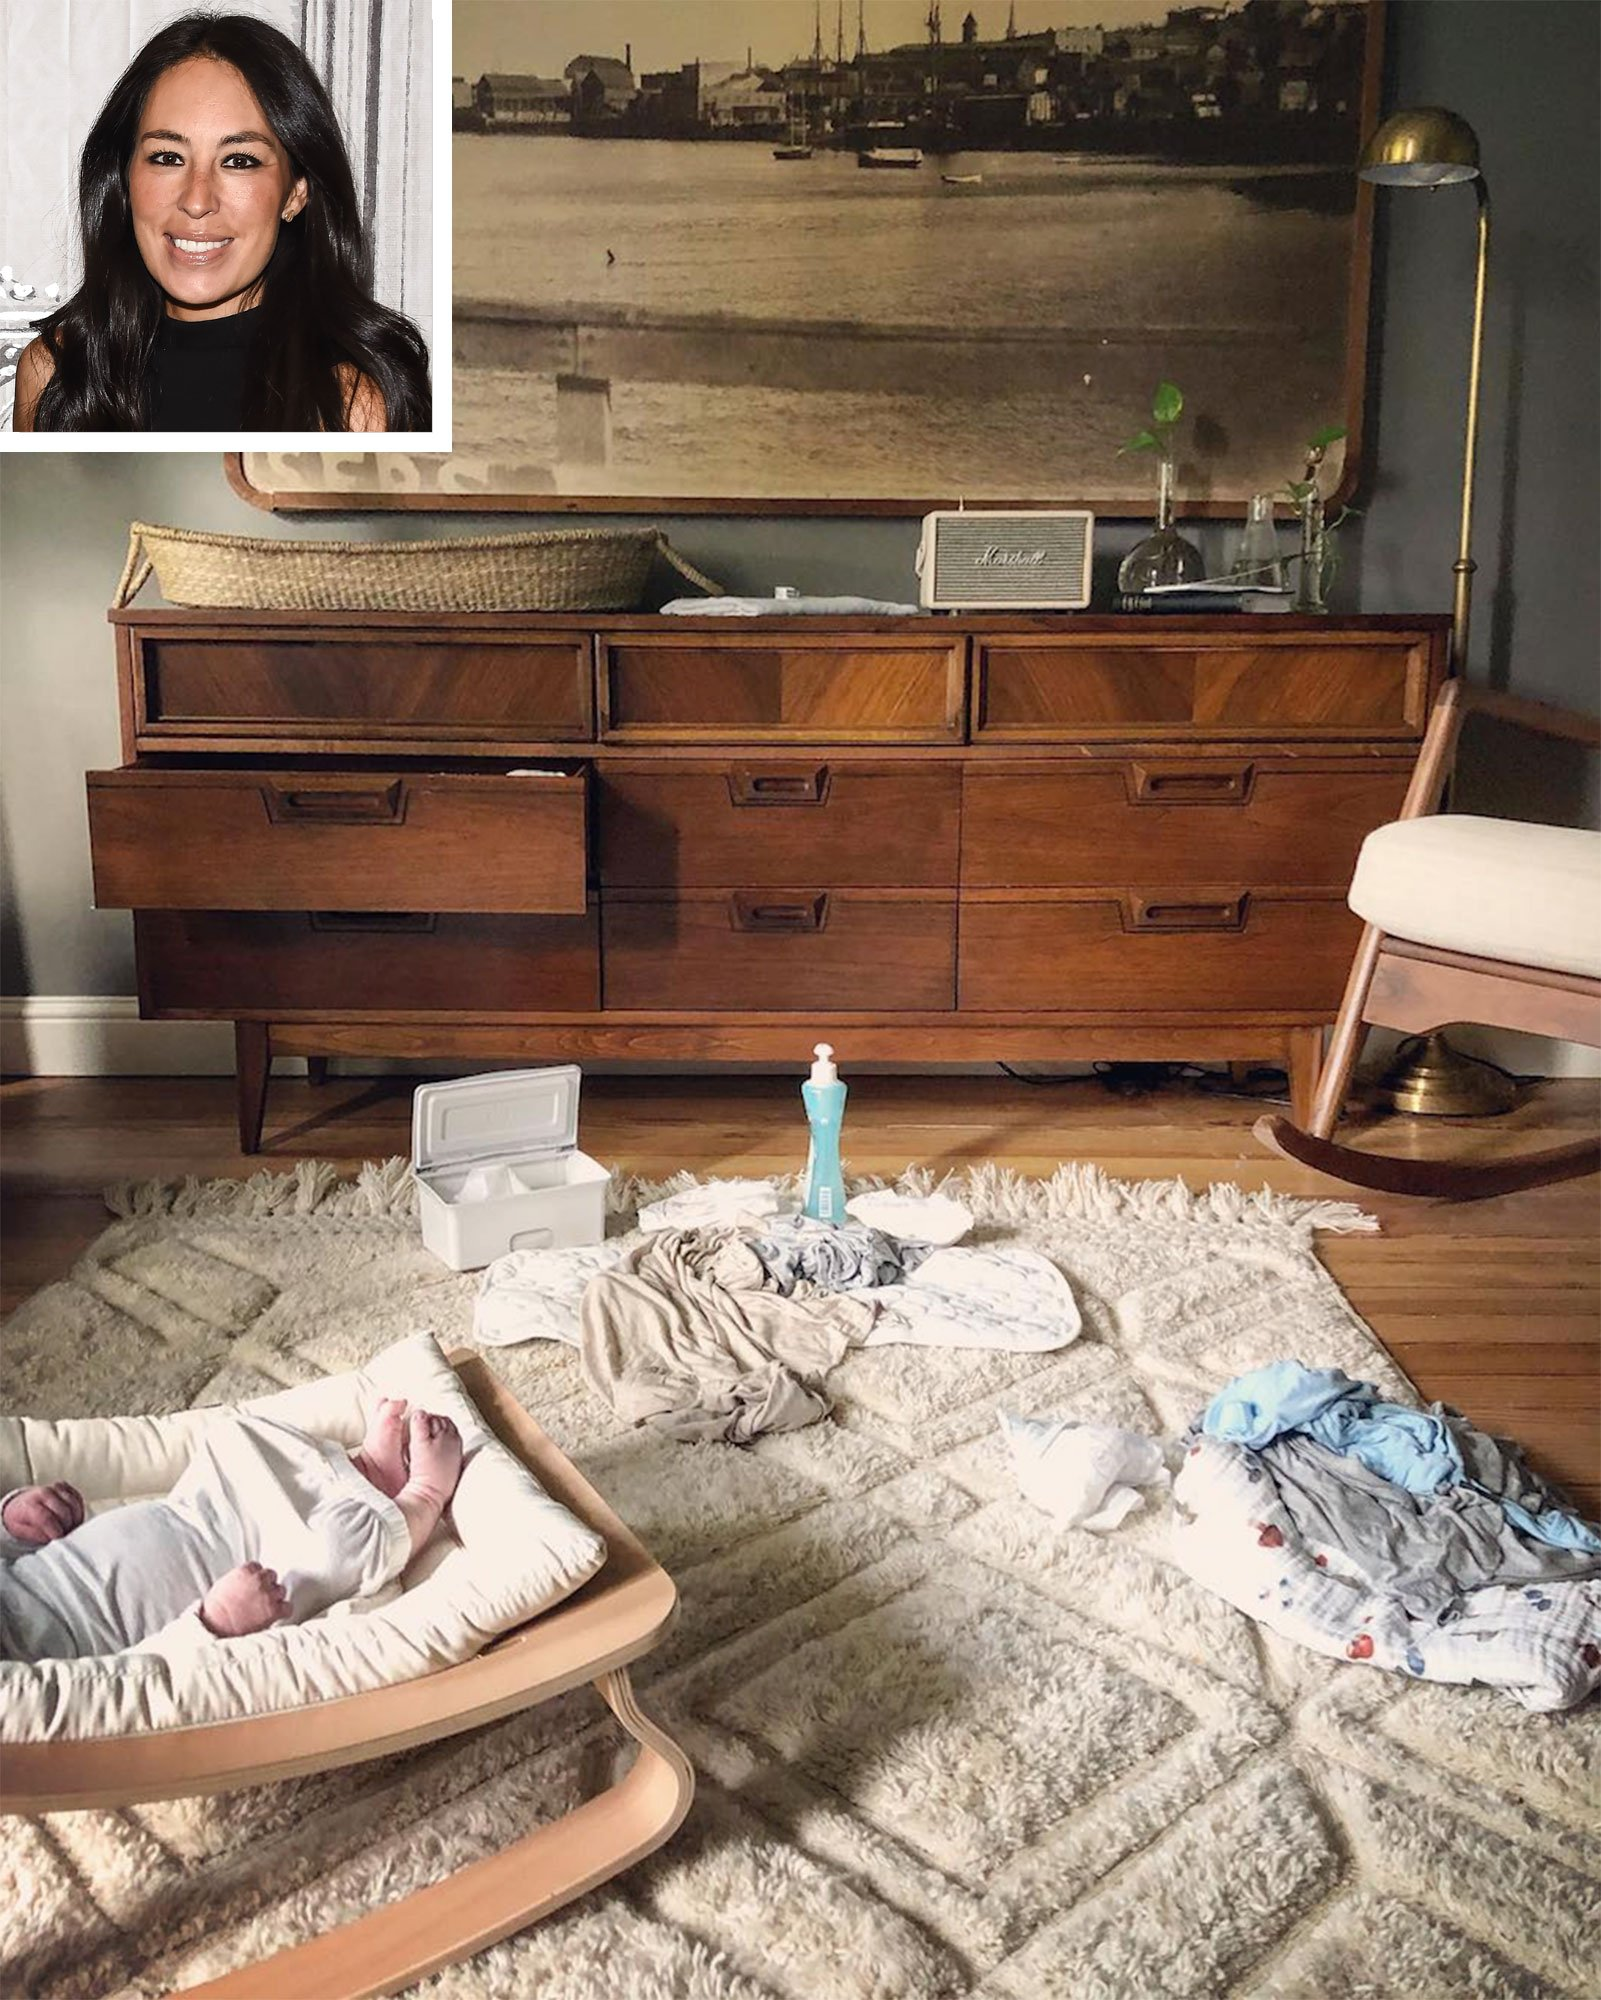 Nursery Decor Ideas From Joanna Gaines: Joanna Gaines Shares Details About Where To Get Some Of